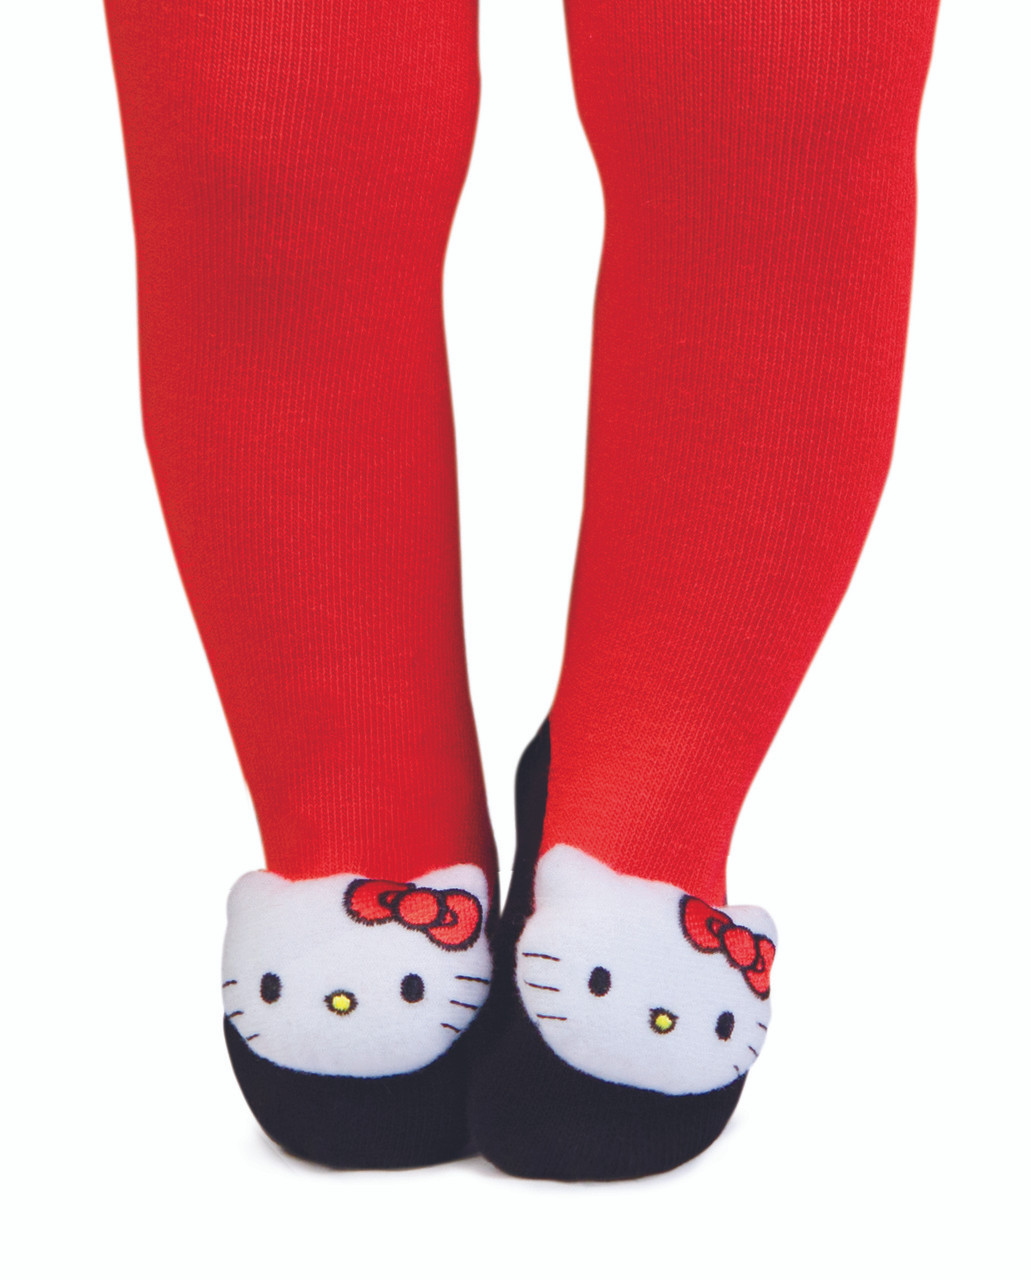 c830dc214 Socks Hello Kitty Rattle Tights 12-18 mos.  http://store-svx5q.mybigcommerce.com/product_images/web/